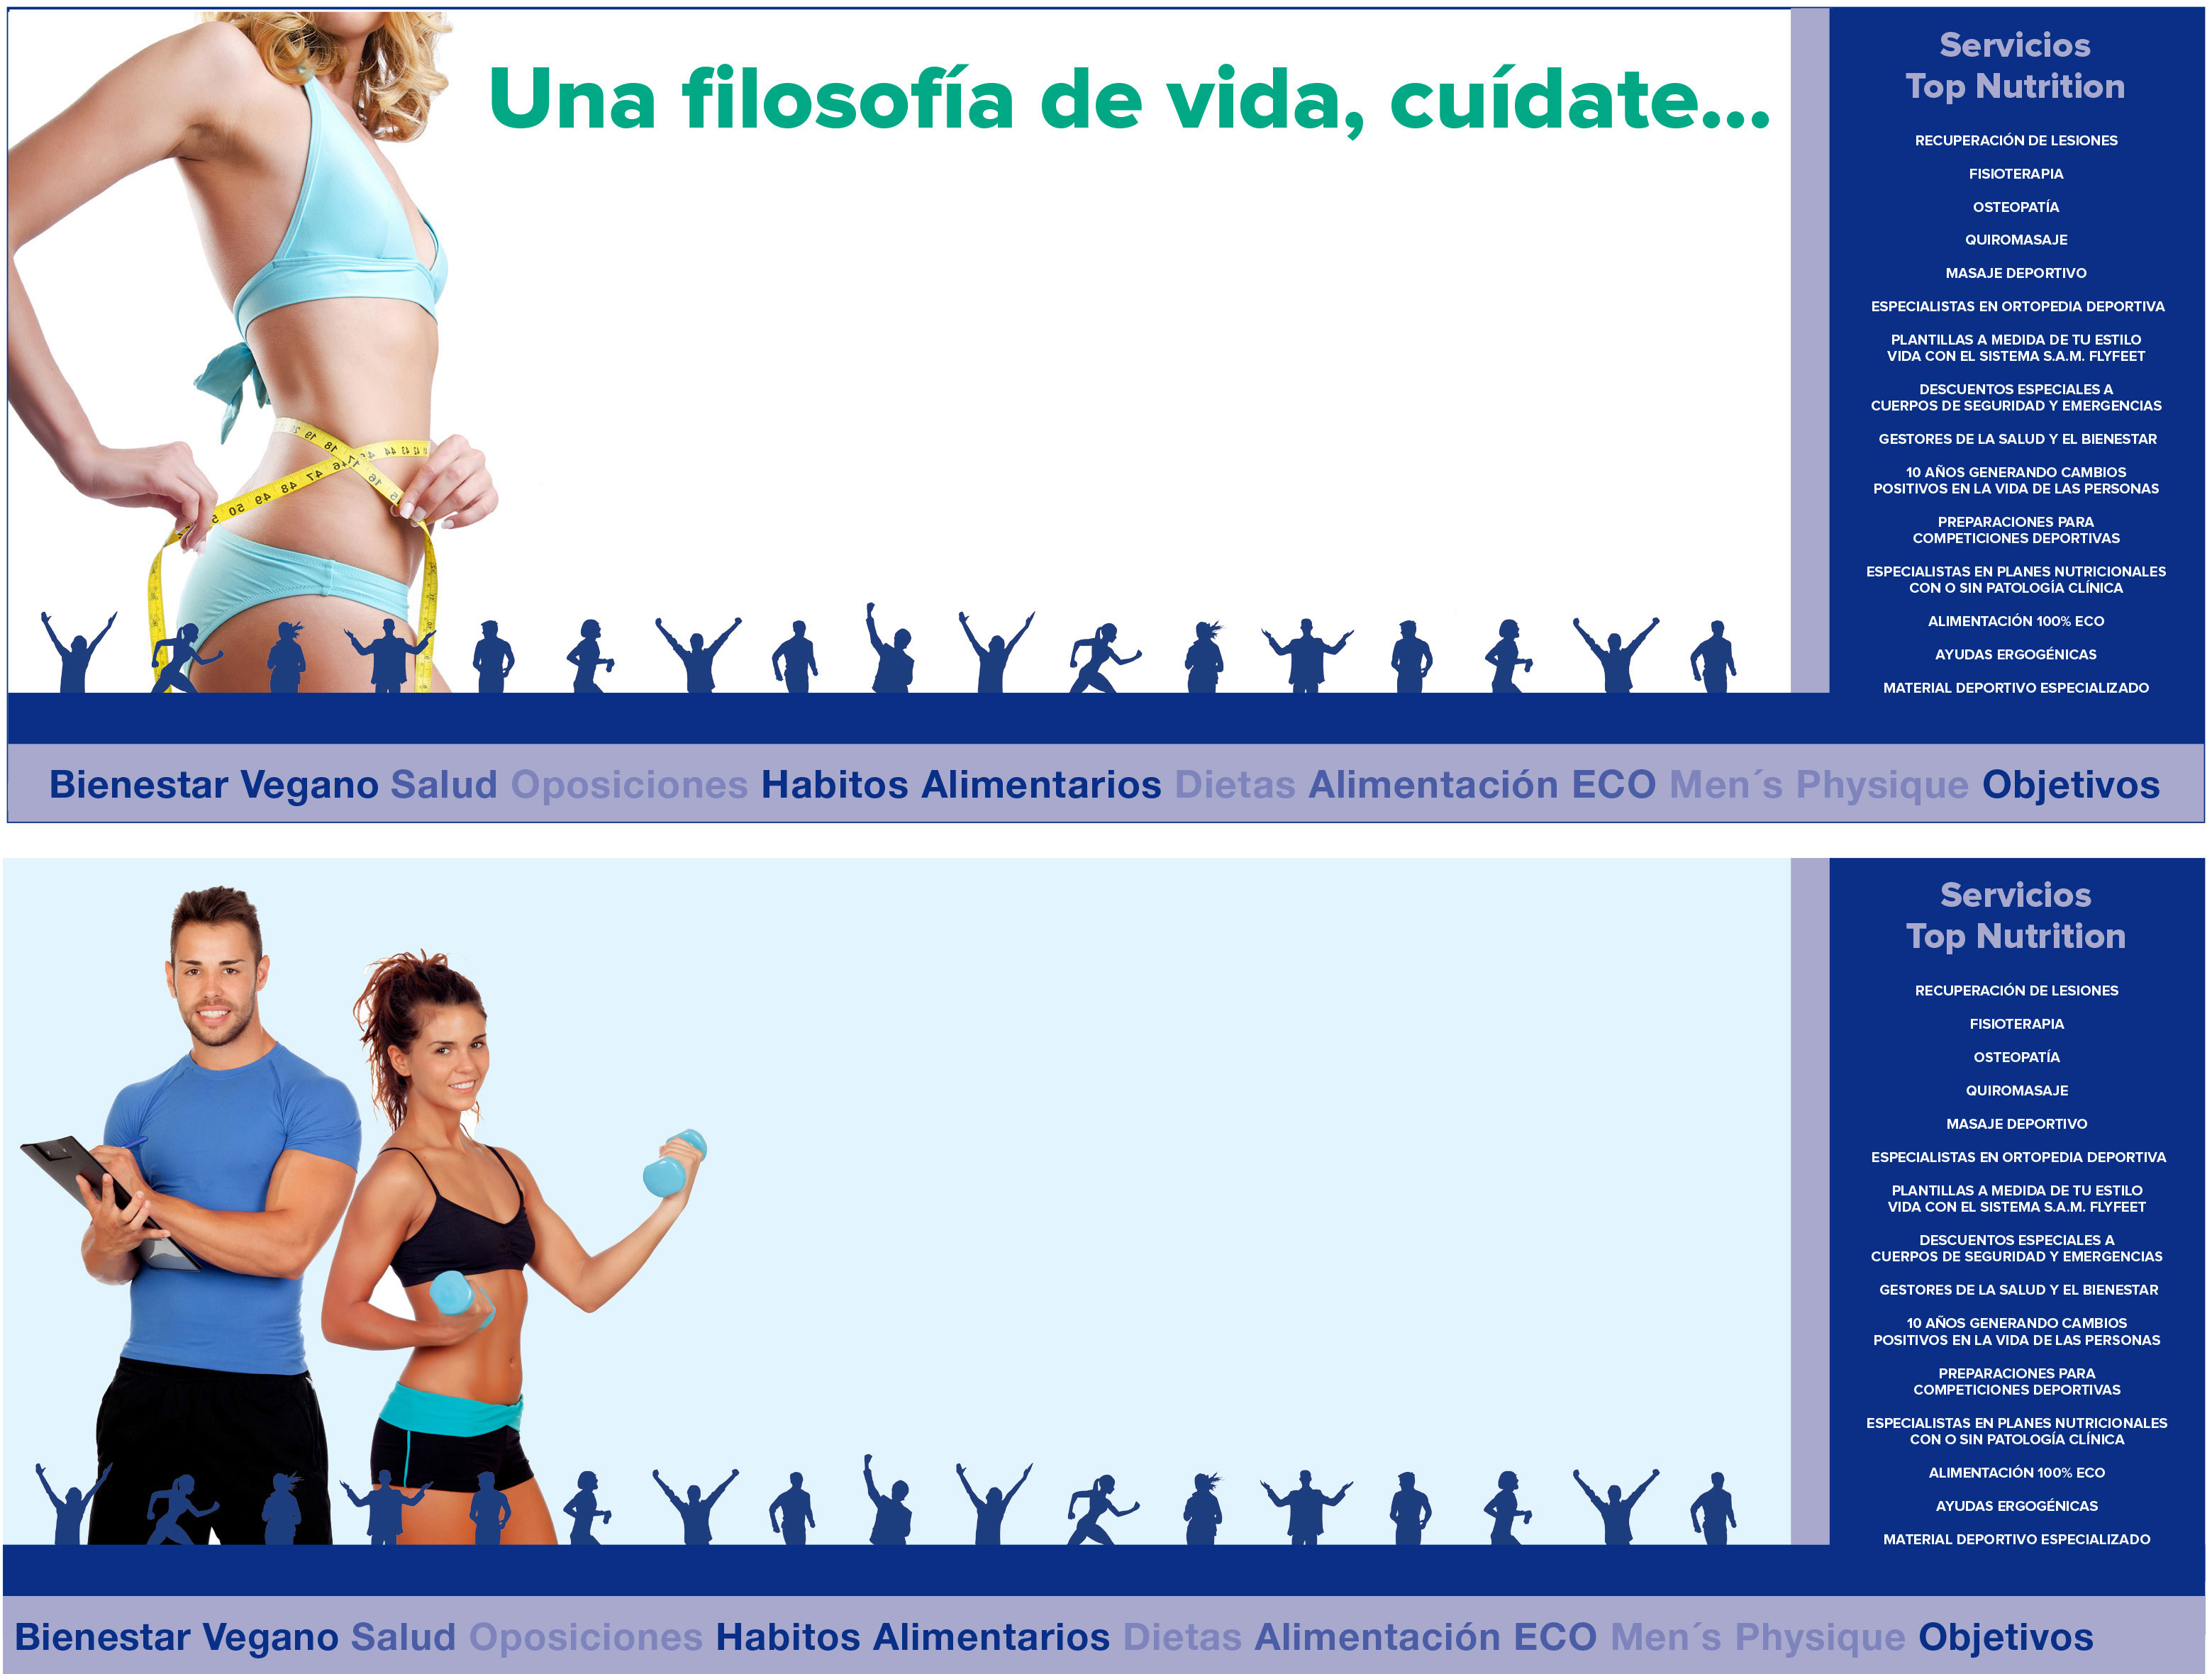 Proyecto escaparate topnutrition.es